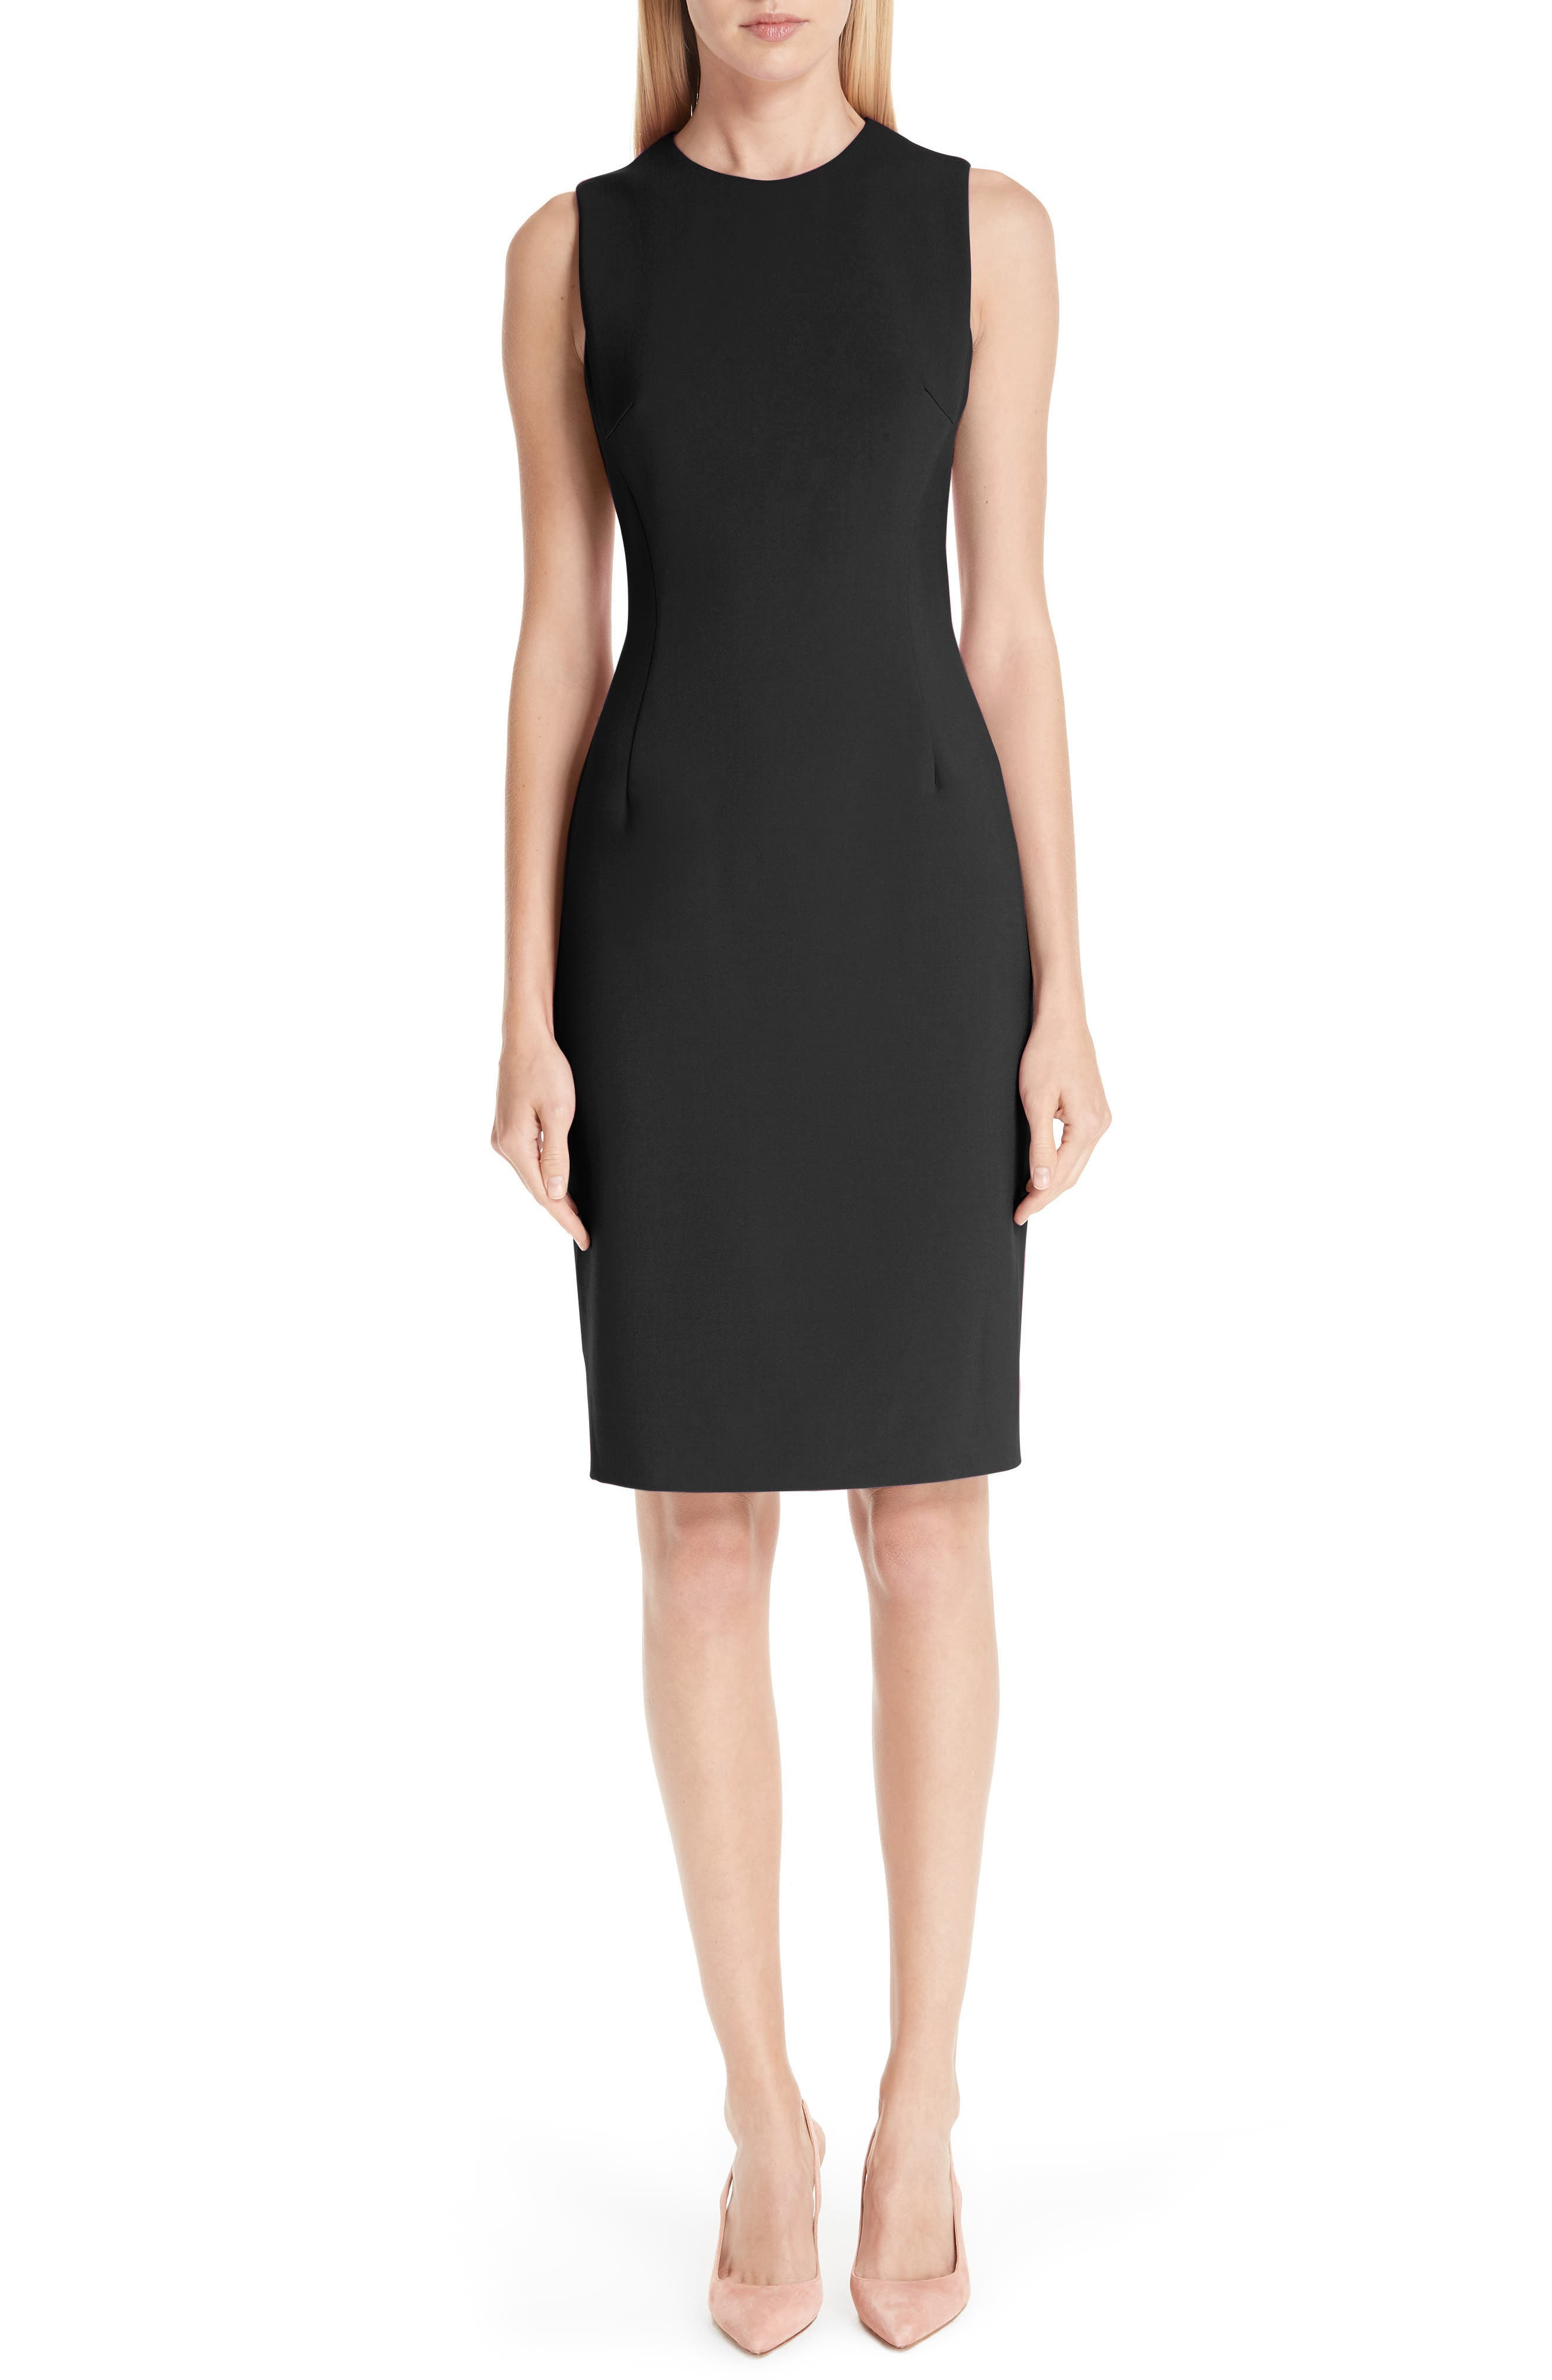 VERSACE COLLECTION, Stretch Cady Pencil Dress, Main thumbnail 1, color, 001